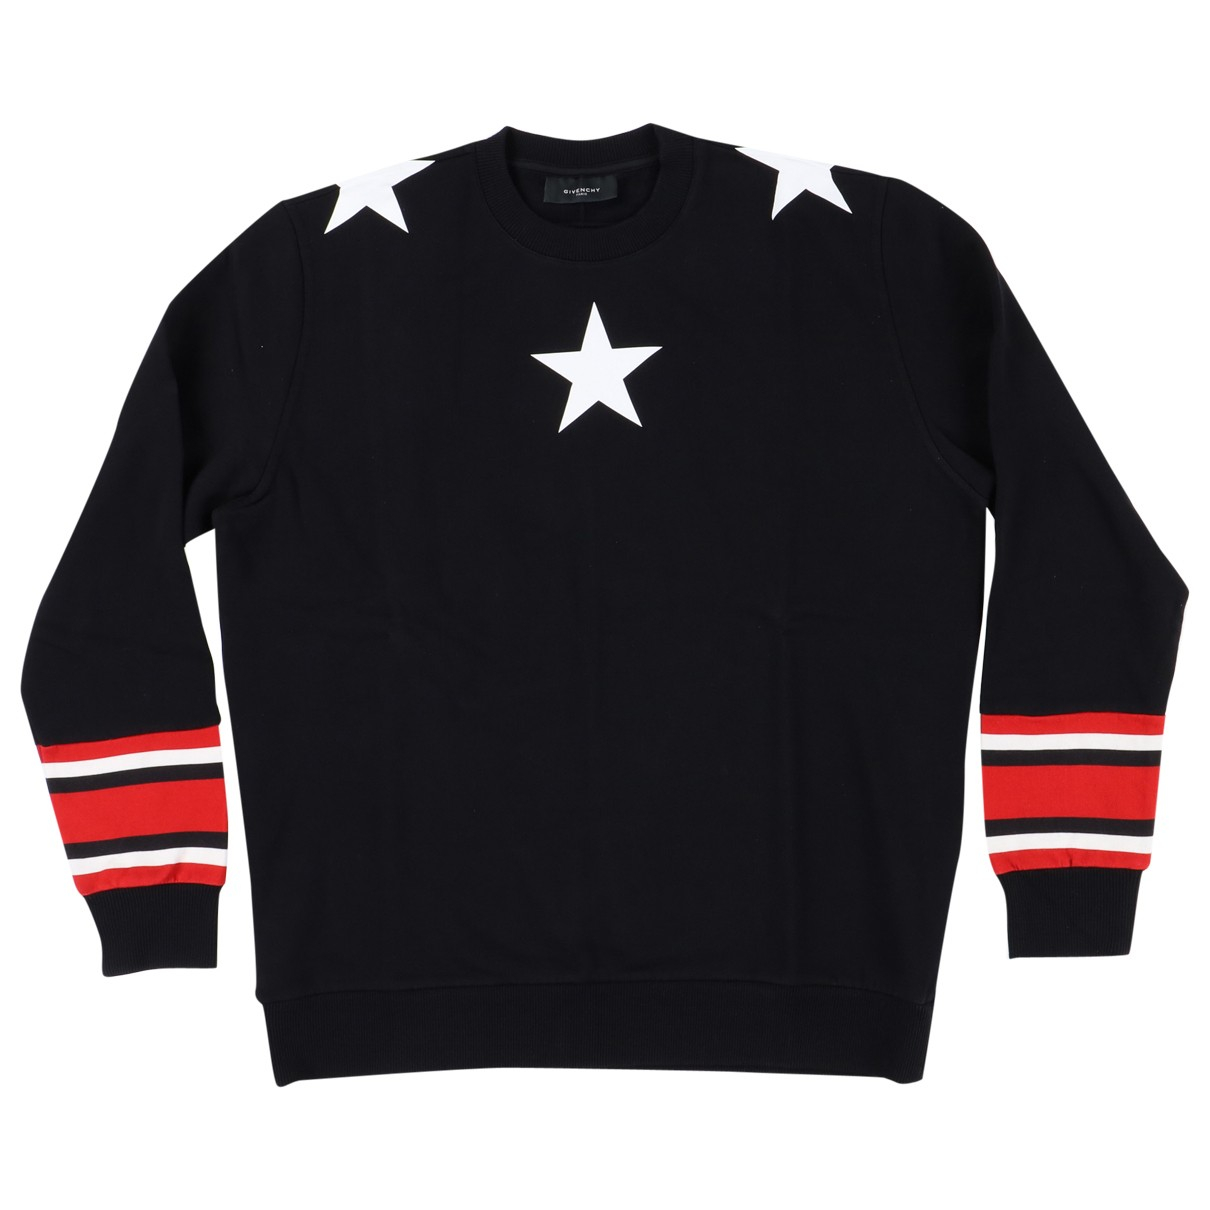 Jersey Givenchy